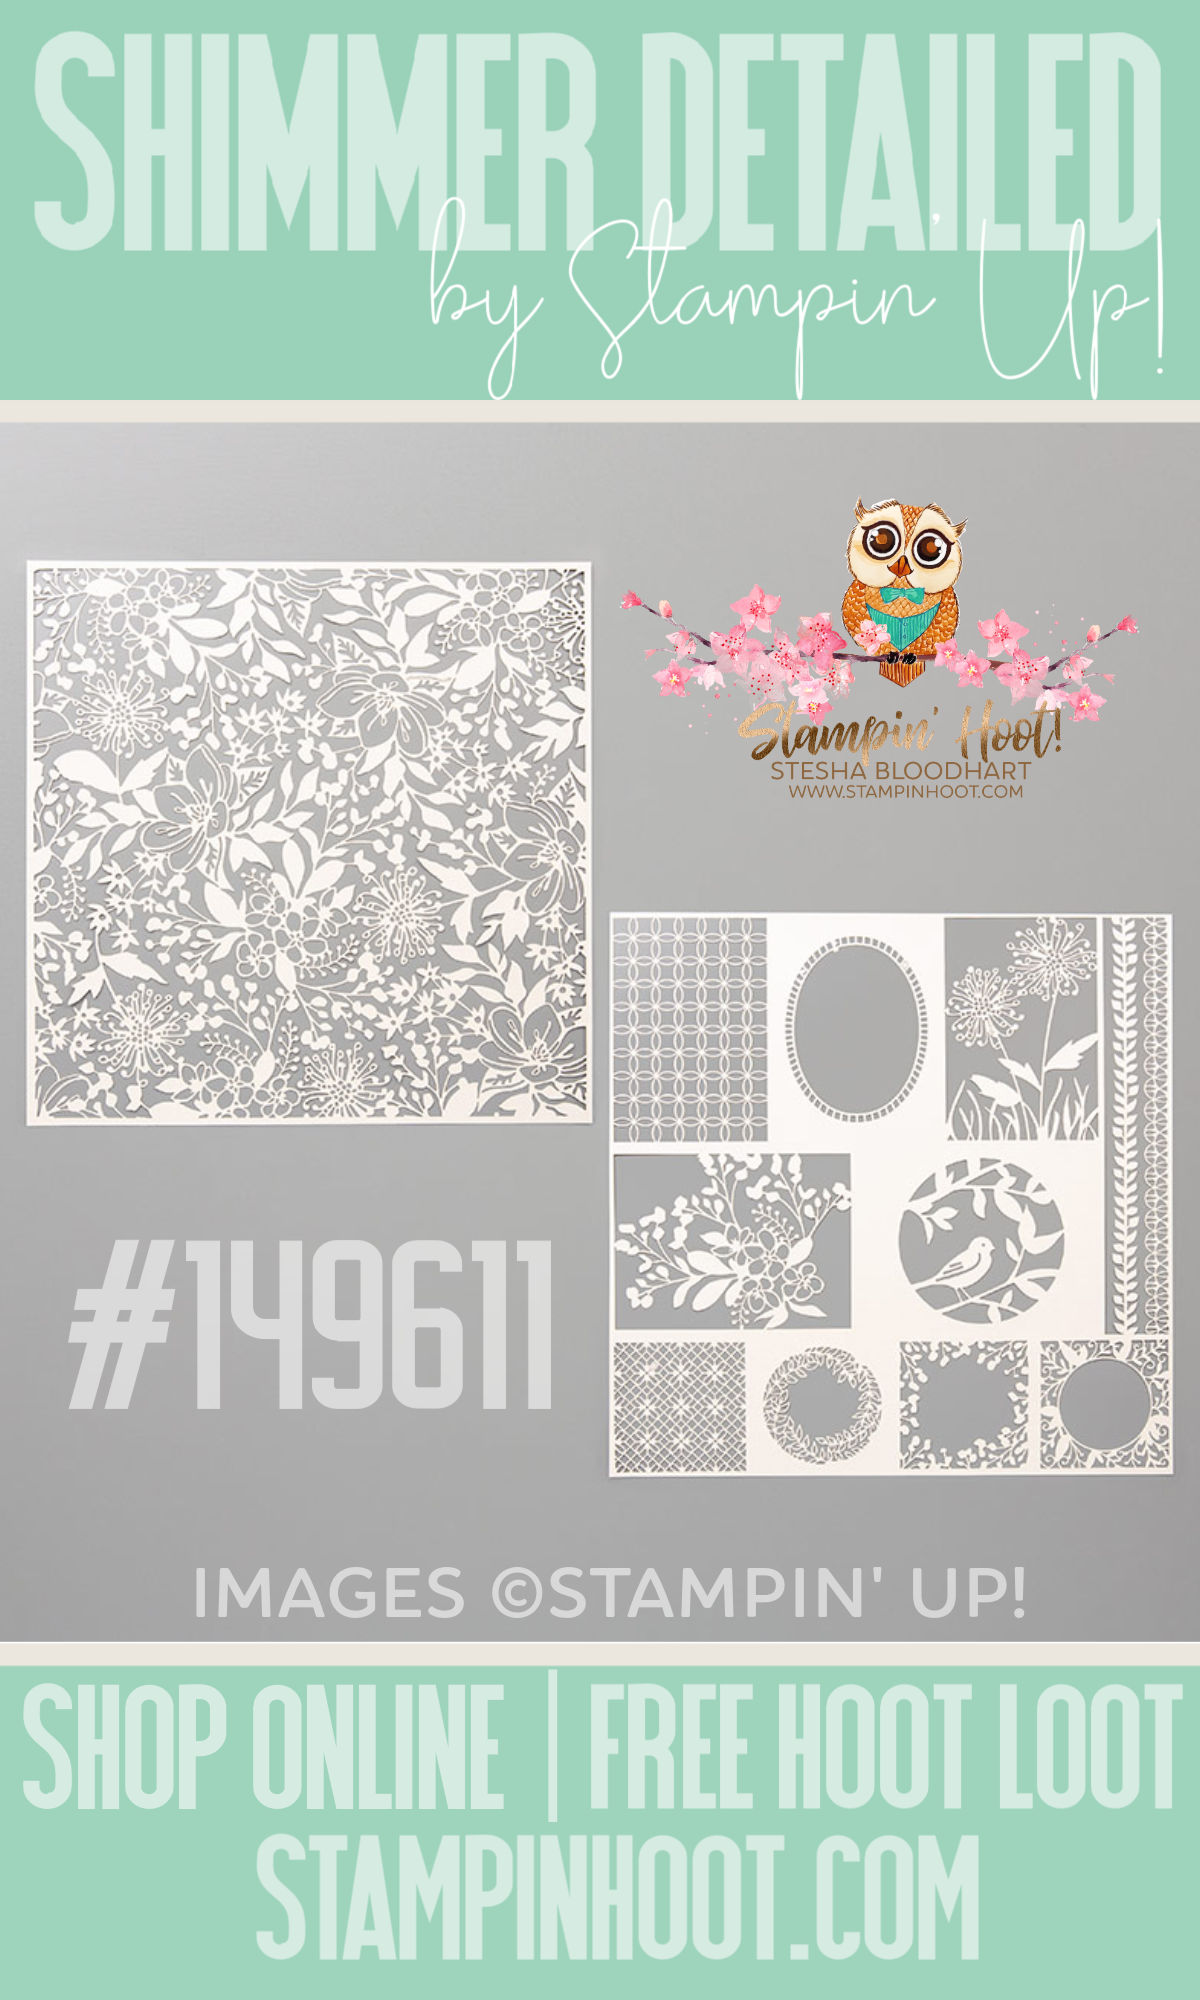 Shimmer Detailed Laser-Cut Specialty Paper from Stampin' Up!